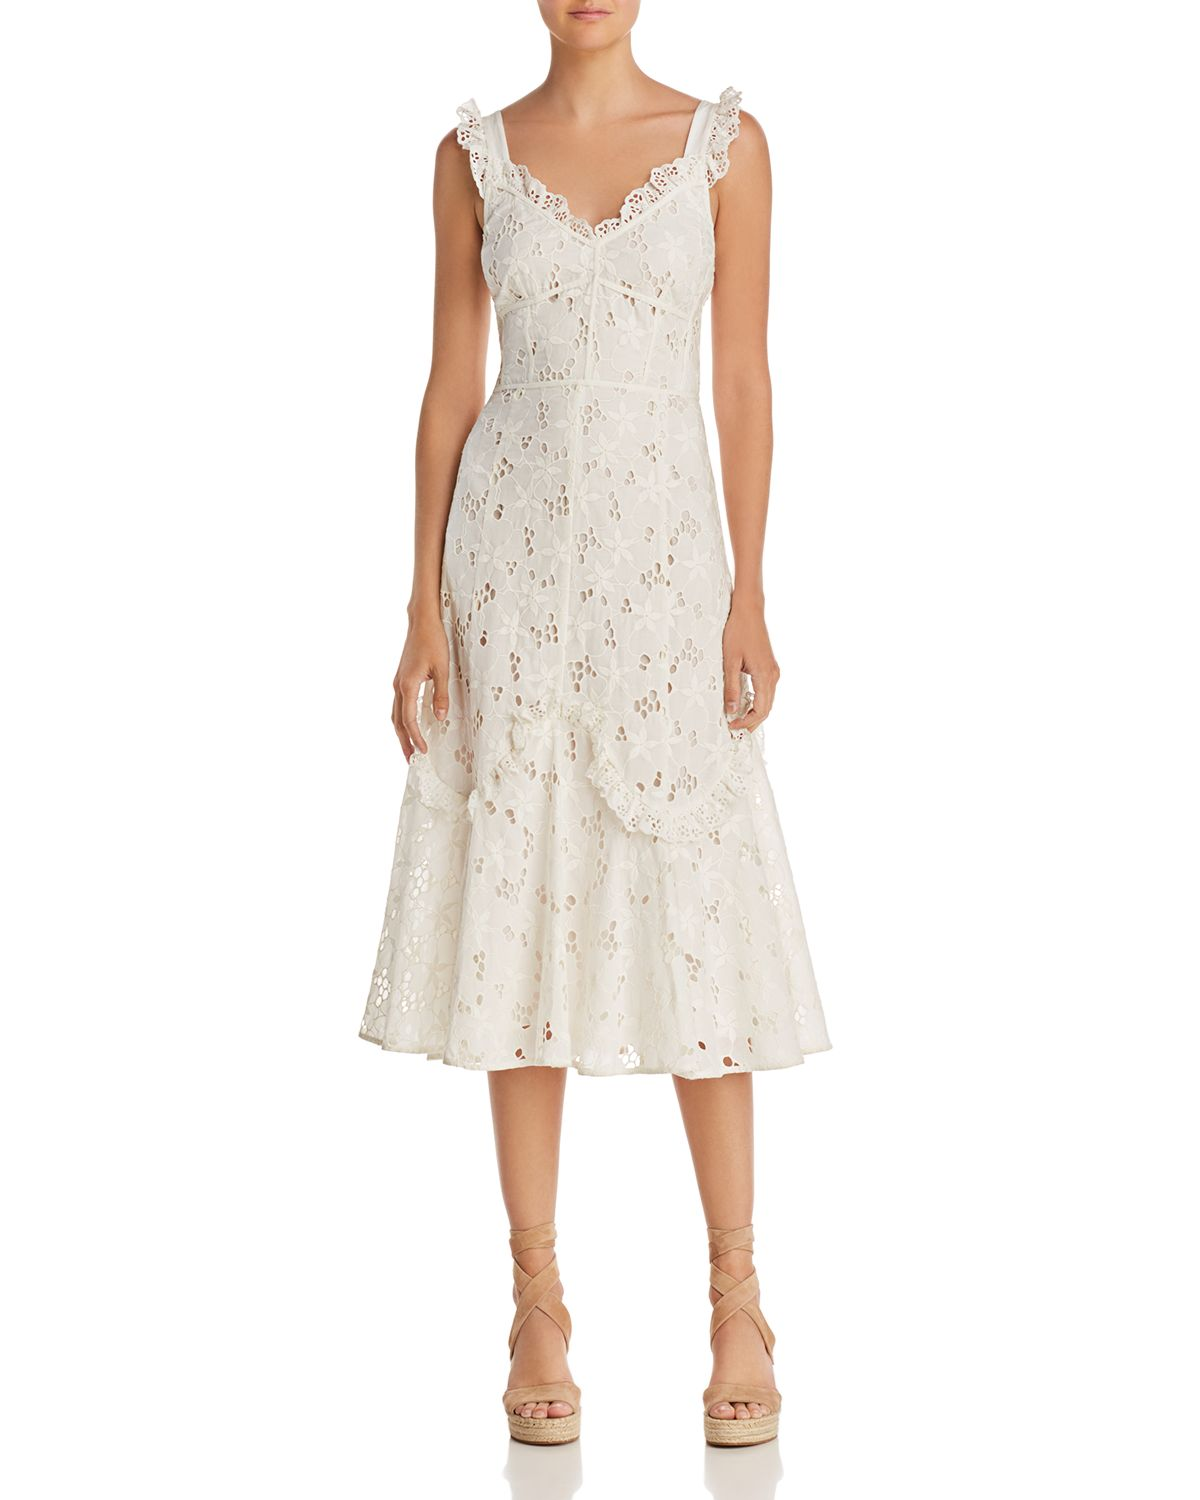 Adriana Lace Midi Dress by Rebecca Taylor